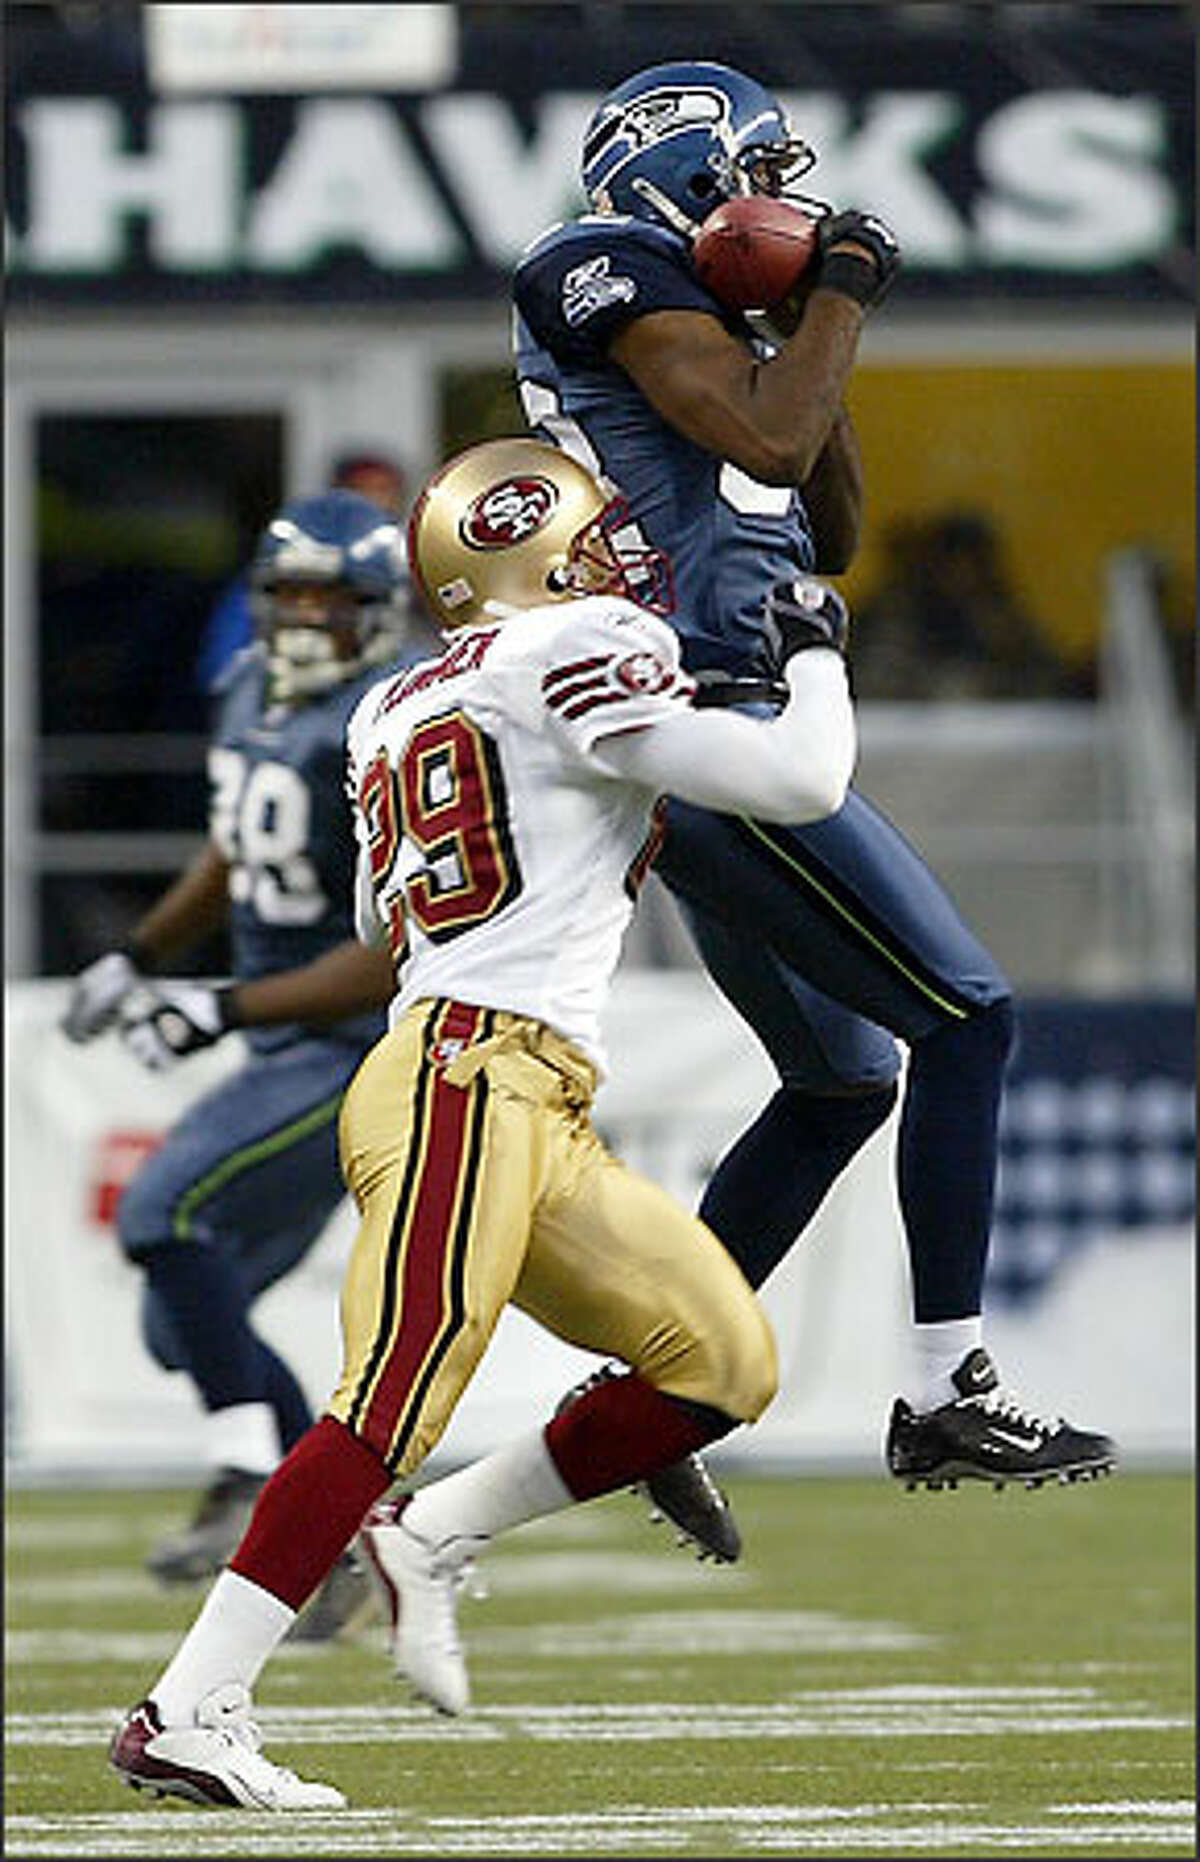 Seahawks' Alex Bannister makes a catch over 49er's Ahmed Plummer with 8:32 left in the second quarter of play at Seahawks Stadium.